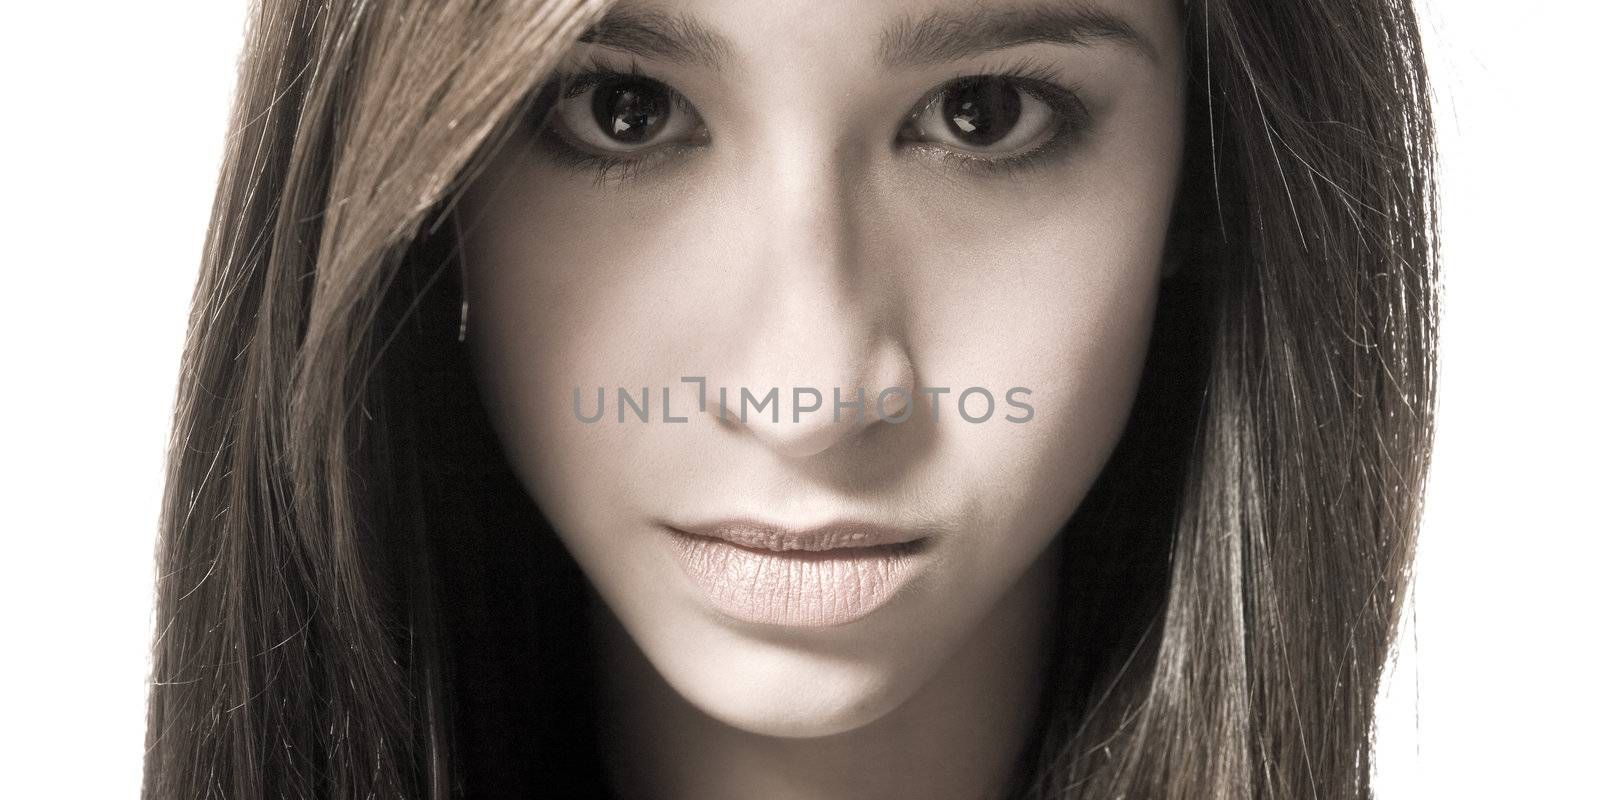 Studio portrait of a beautiful mixed race, vietnamese girl with hypnotic eyes